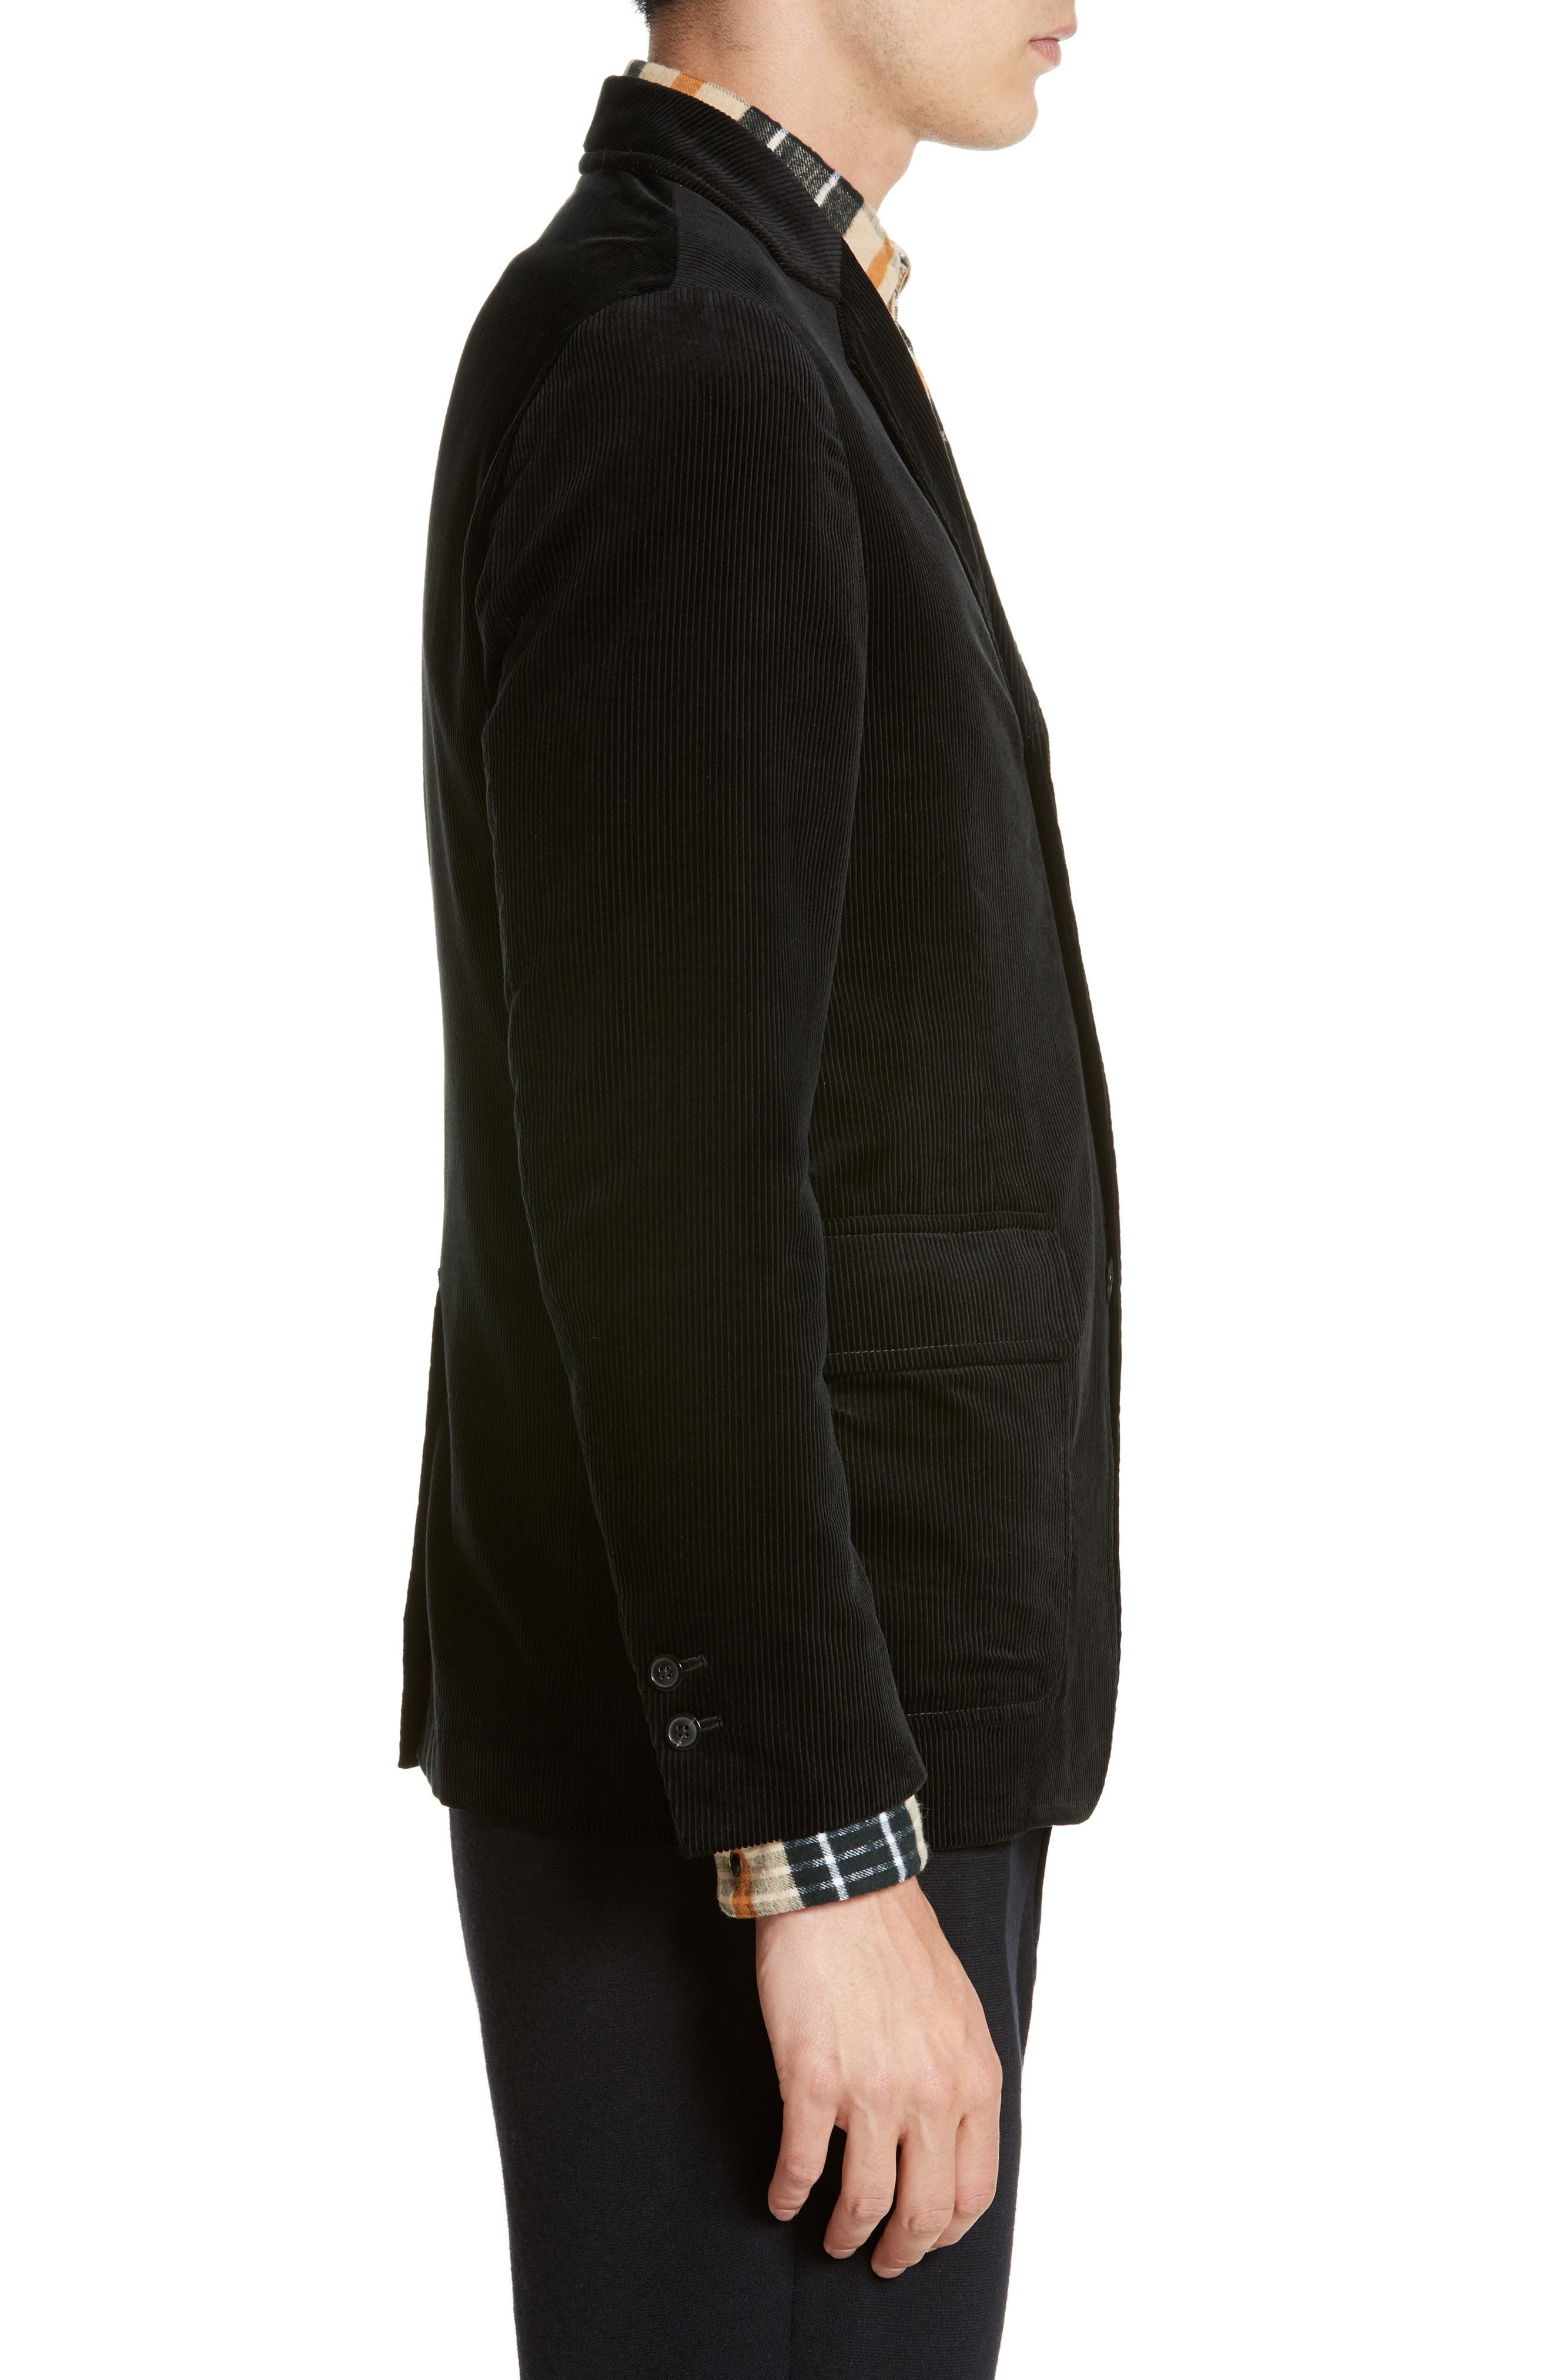 Sea Island Corduroy Jacket,                             Alternate thumbnail 3, color,                             Black